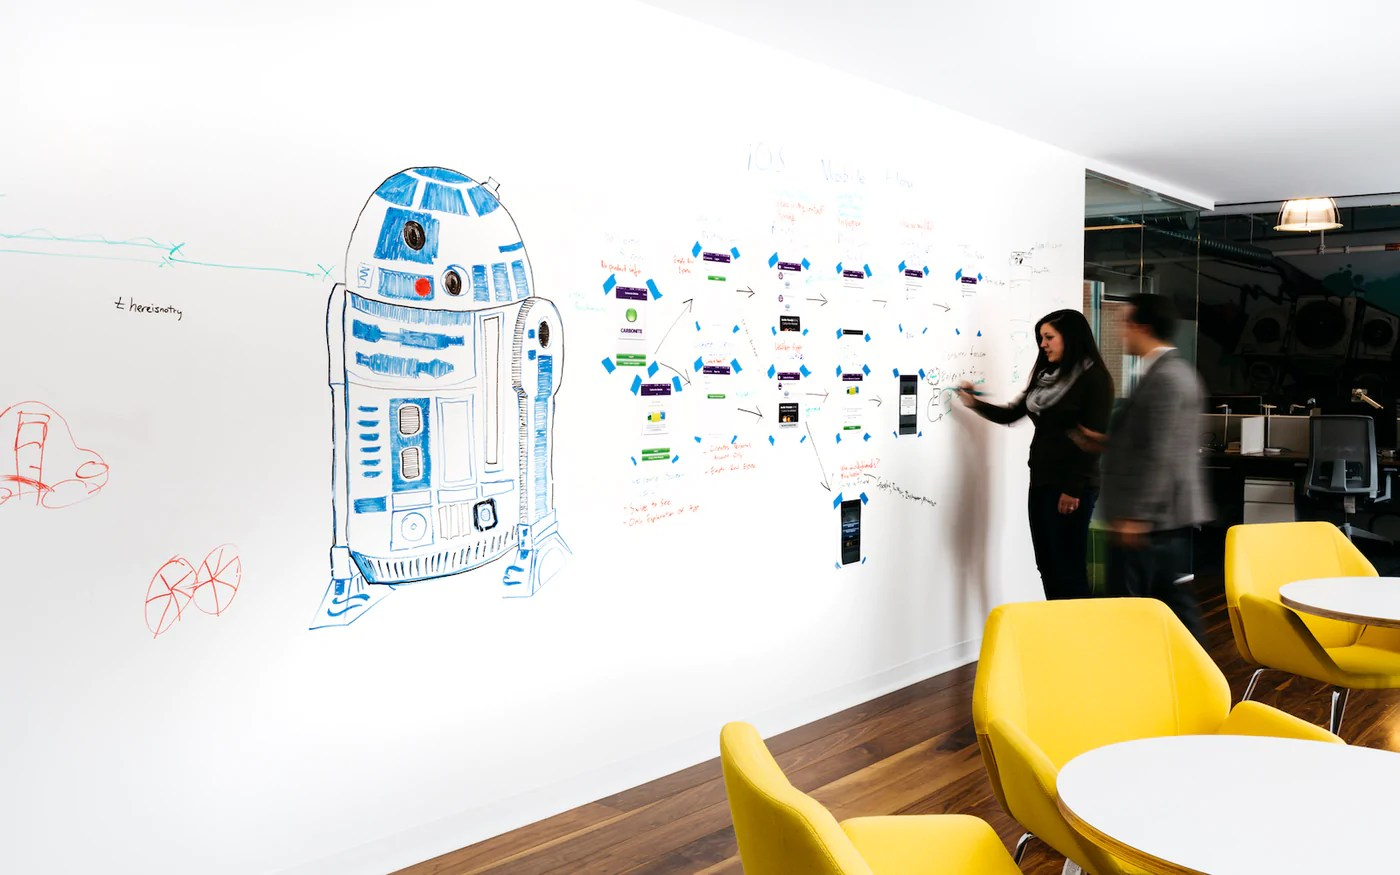 Turn A Wall Into A Whiteboard White Board Paint Dry Erase Paint Whiteboard Paint Ideapaint